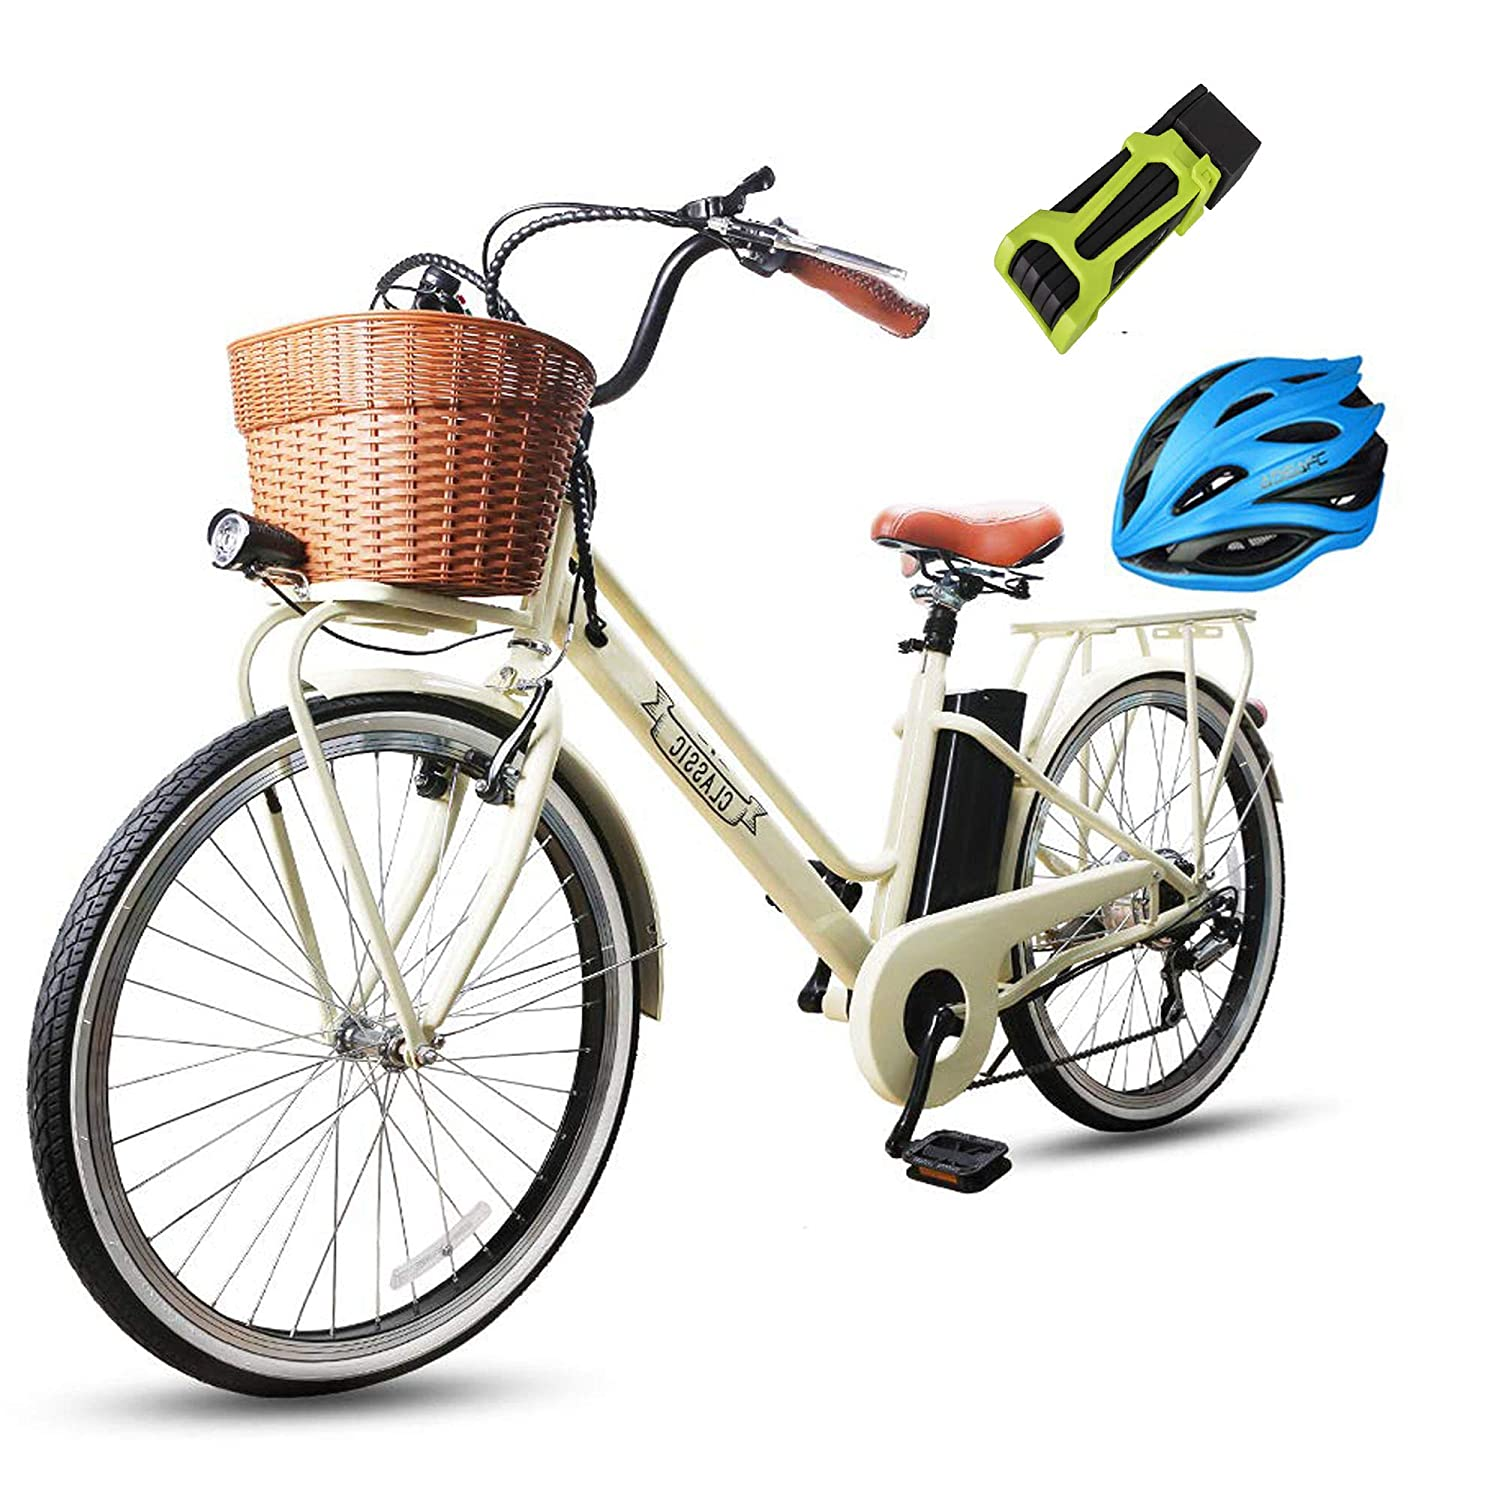 How To Ride Your E-Bike Safely | Electric Bike in Seattle WA 81BTBjXa7TL._SL1500_